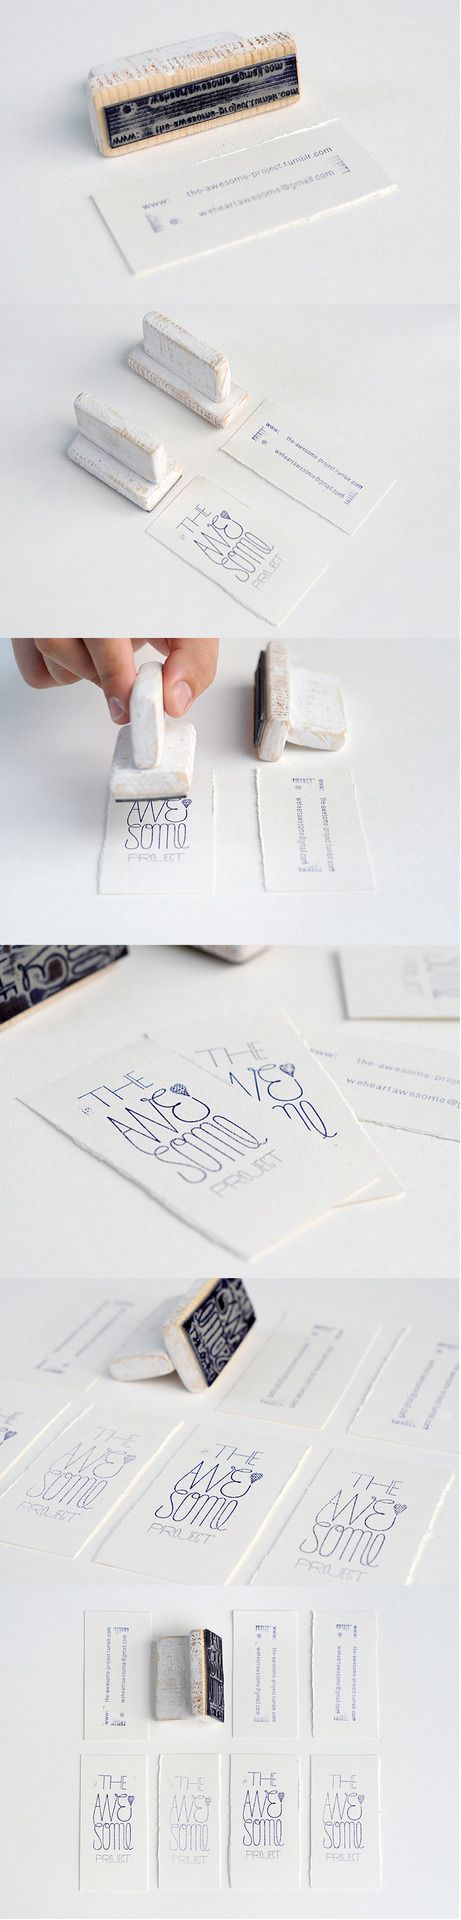 Hand-Made Awesome Business Cards | Designed by The Awesome Project